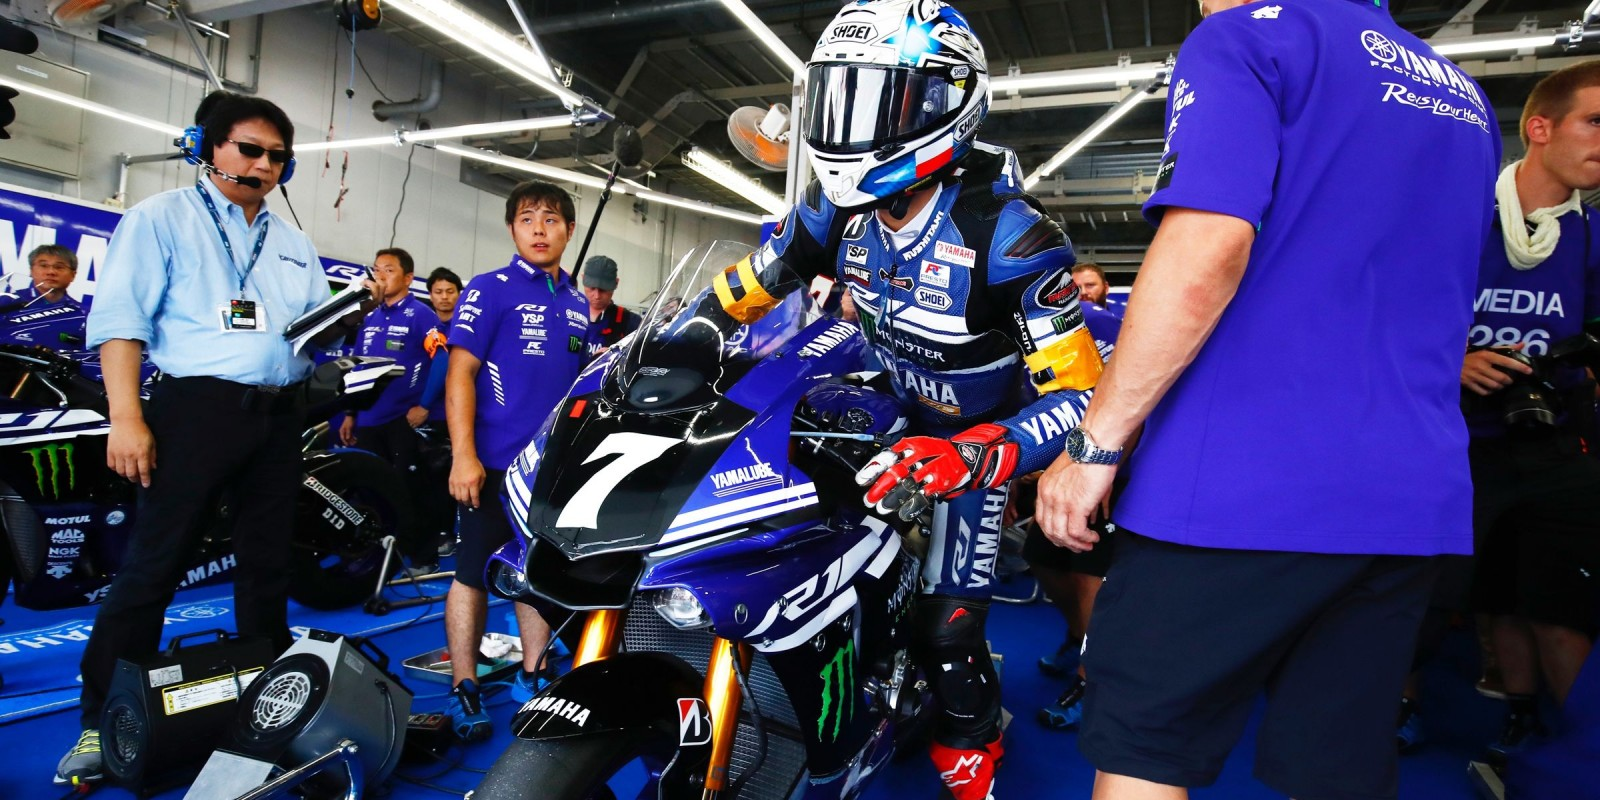 Action shots of our athletes at Suzuka 8 hour, Japan